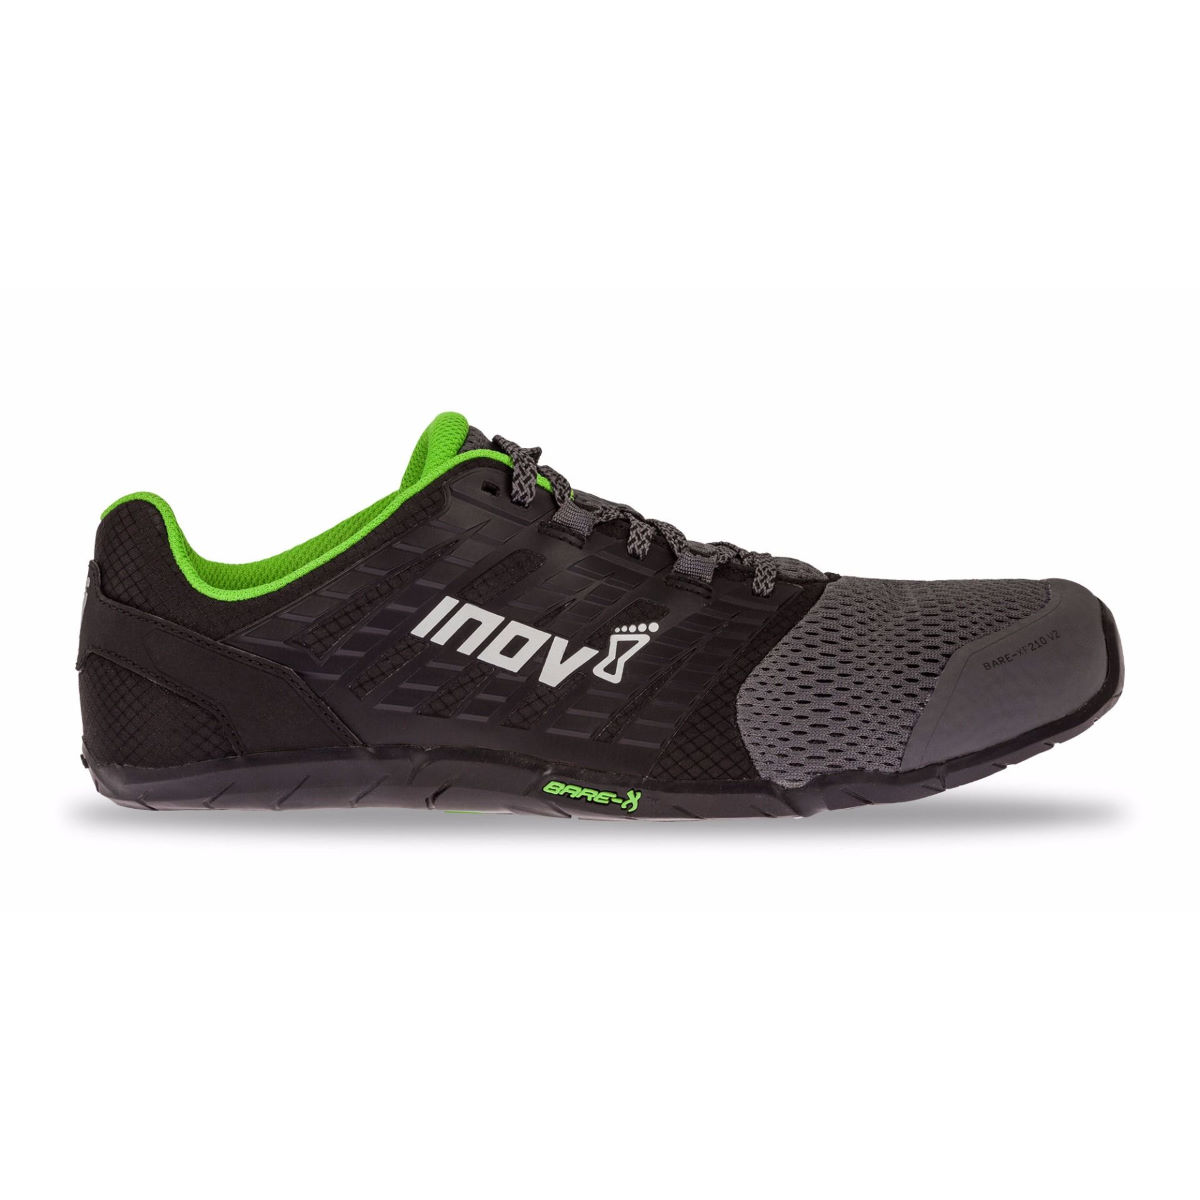 Chaussures Inov-8 Bare-XF 210 v2 - UK 11 GREY/BLACK/GREEN